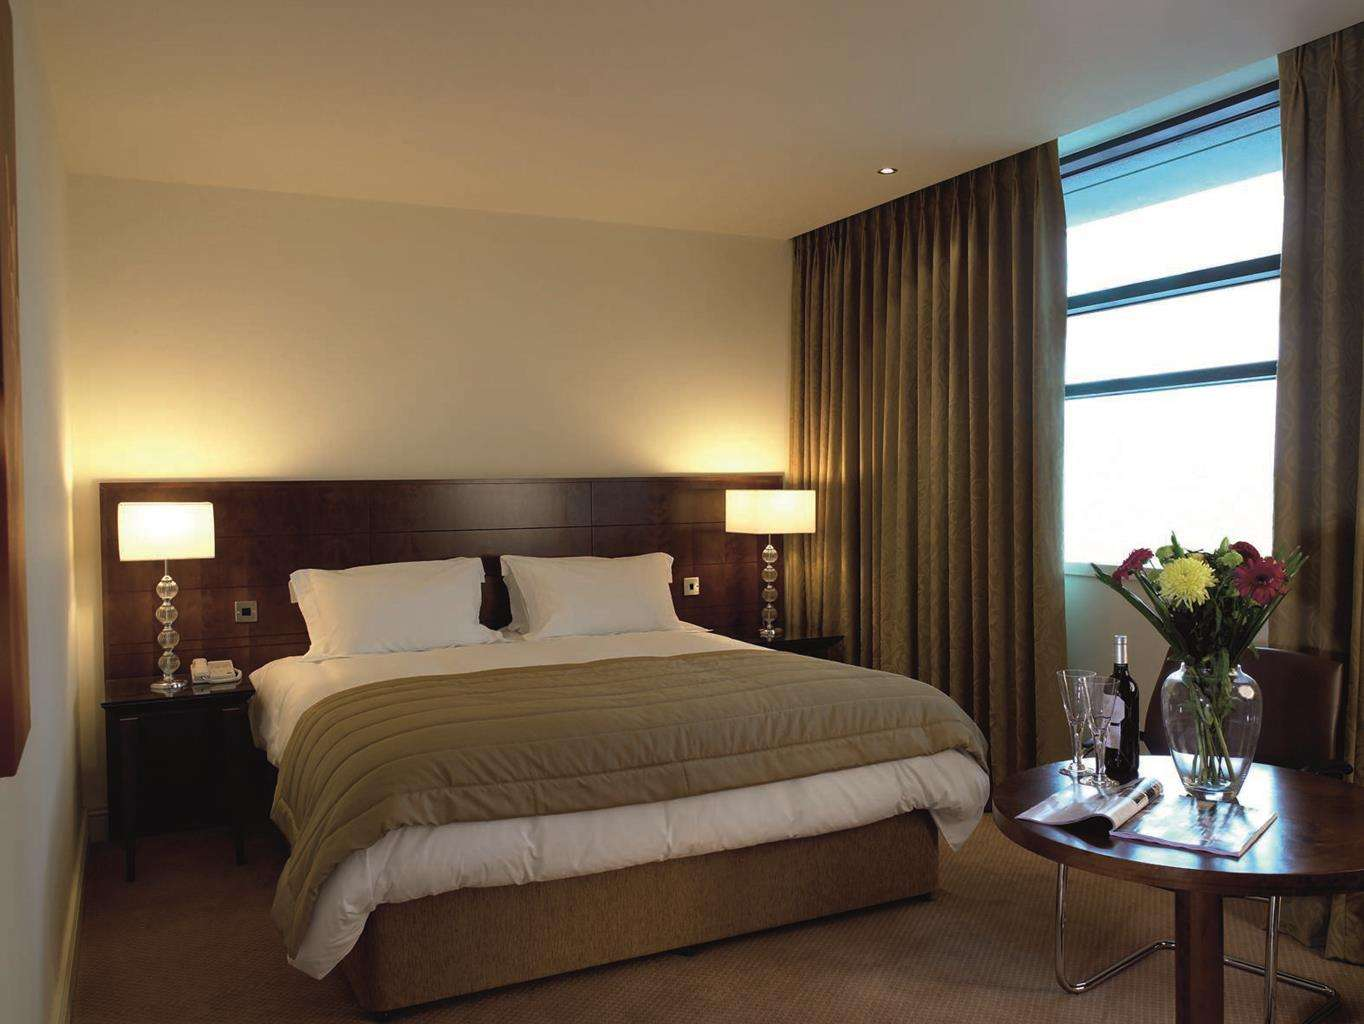 hotels in manchester macdonald manchester hotel - HD1200×900